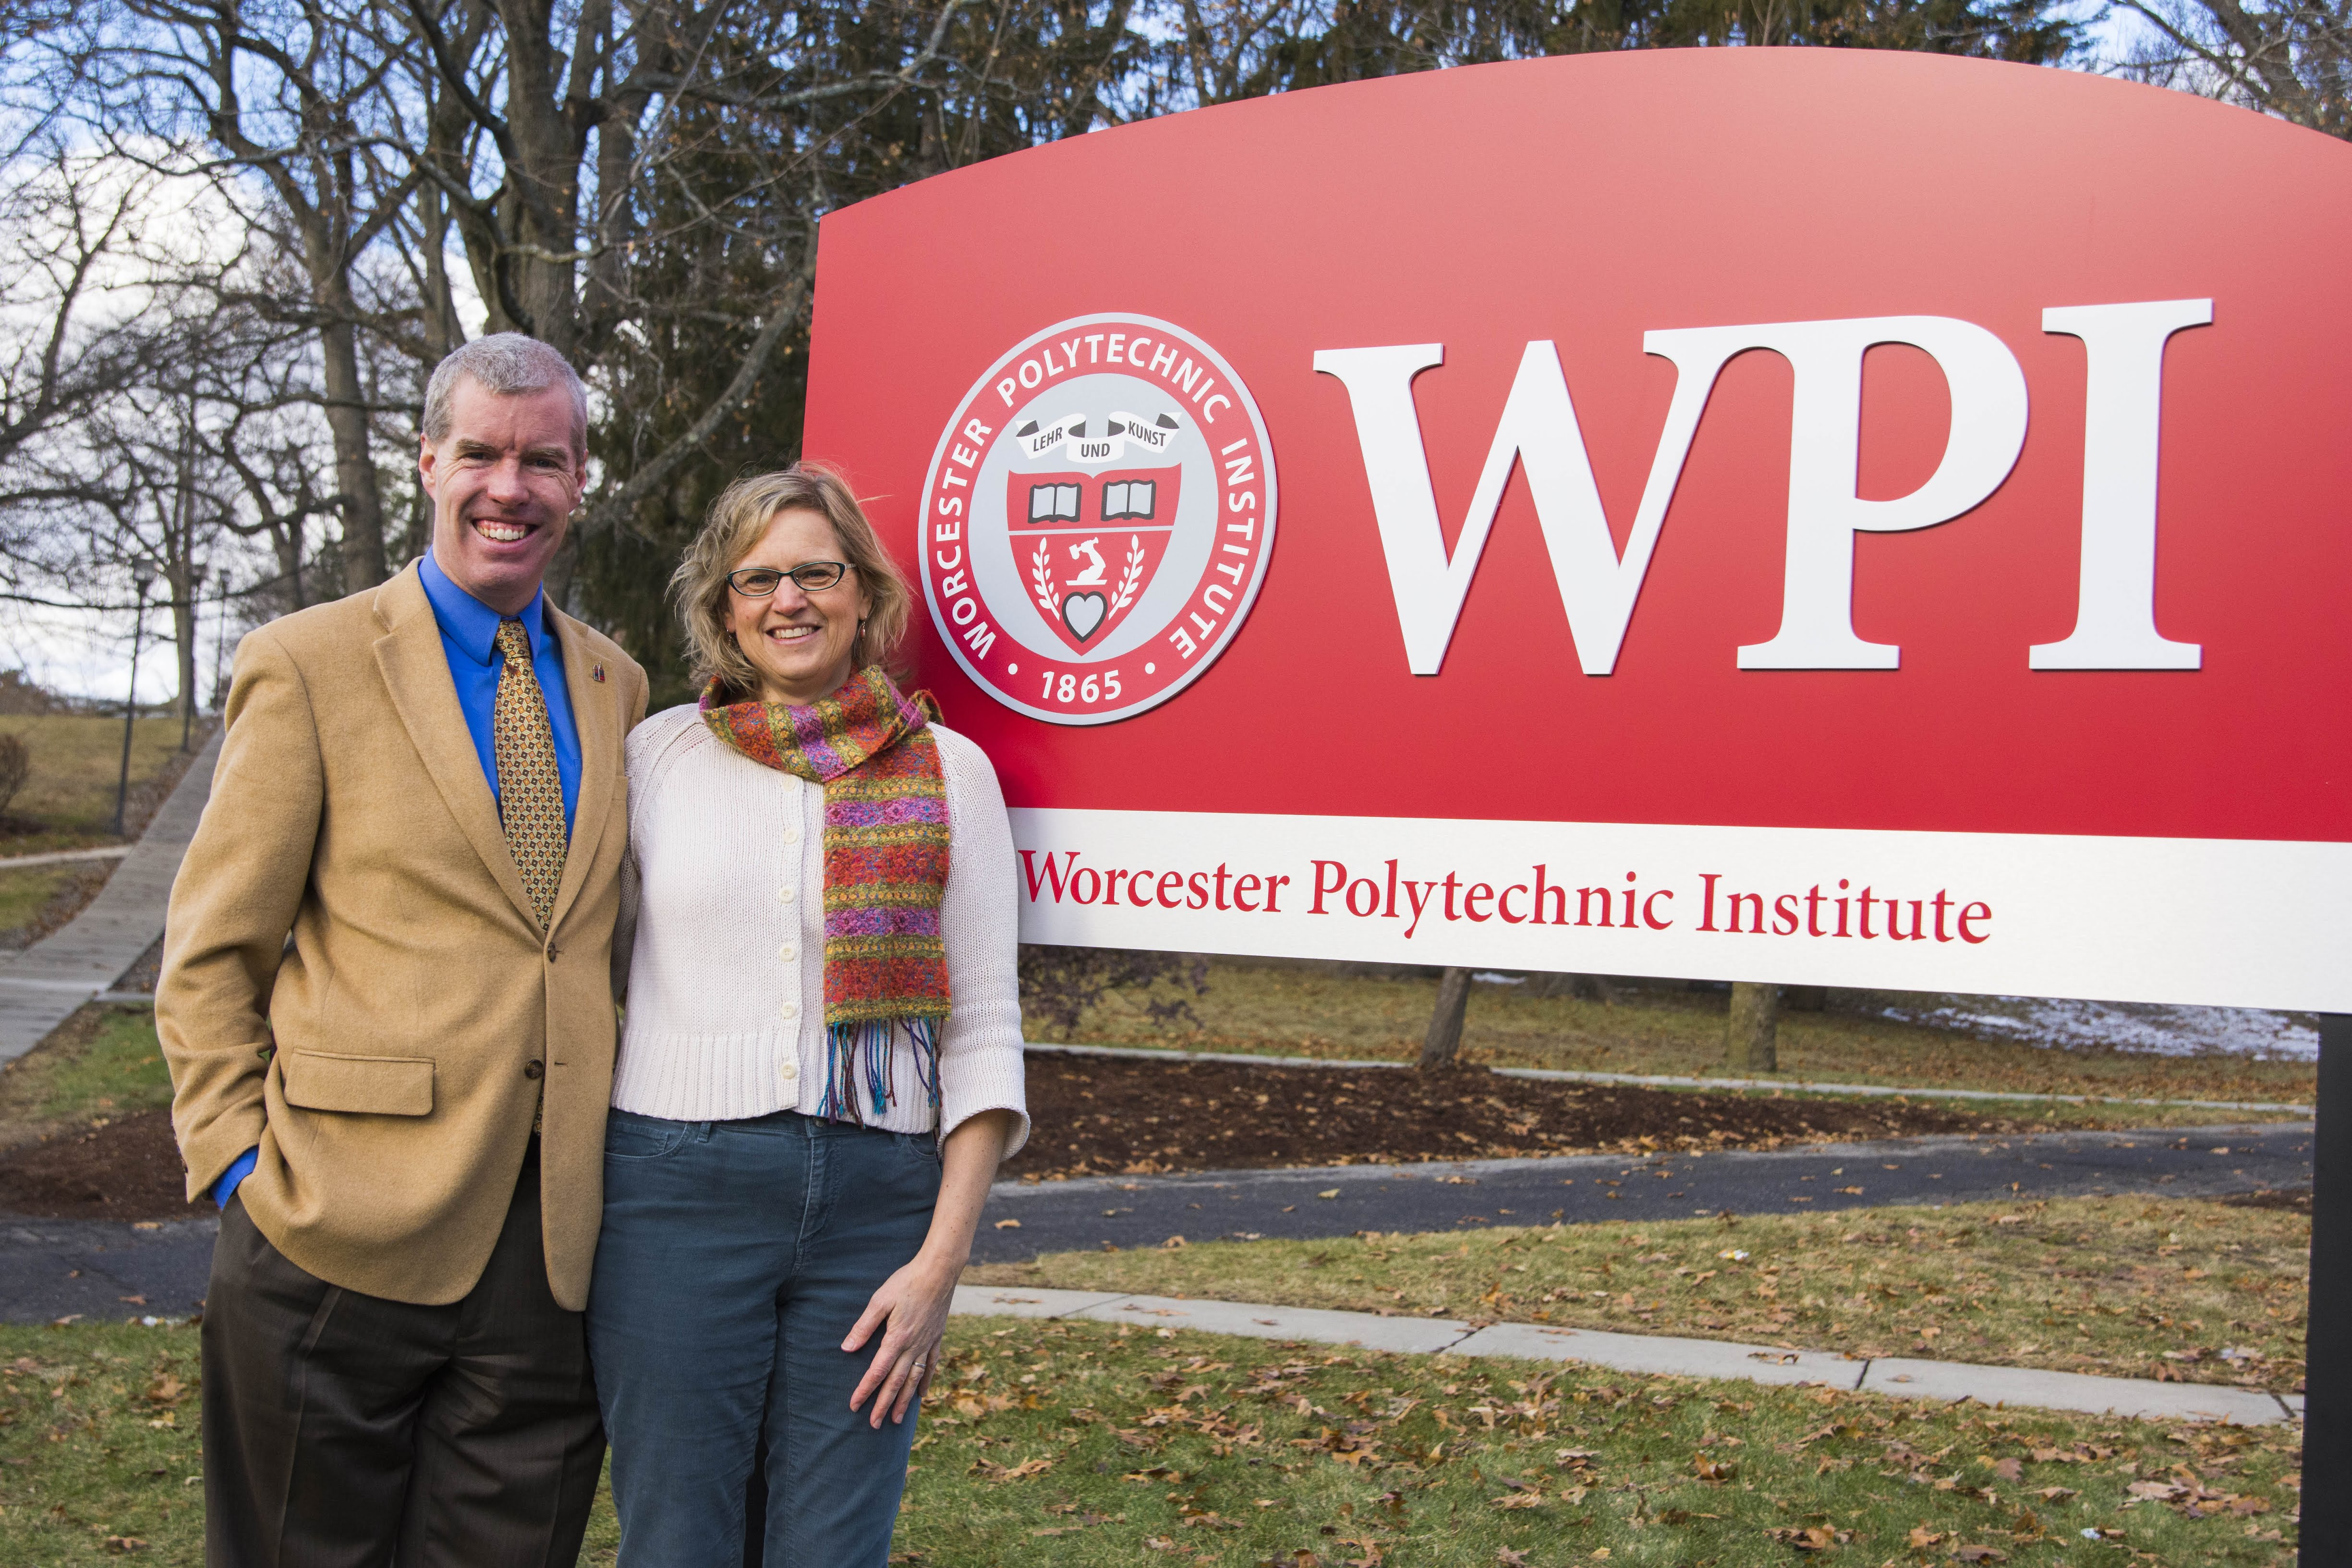 Two People Standing Next to WPI Sign